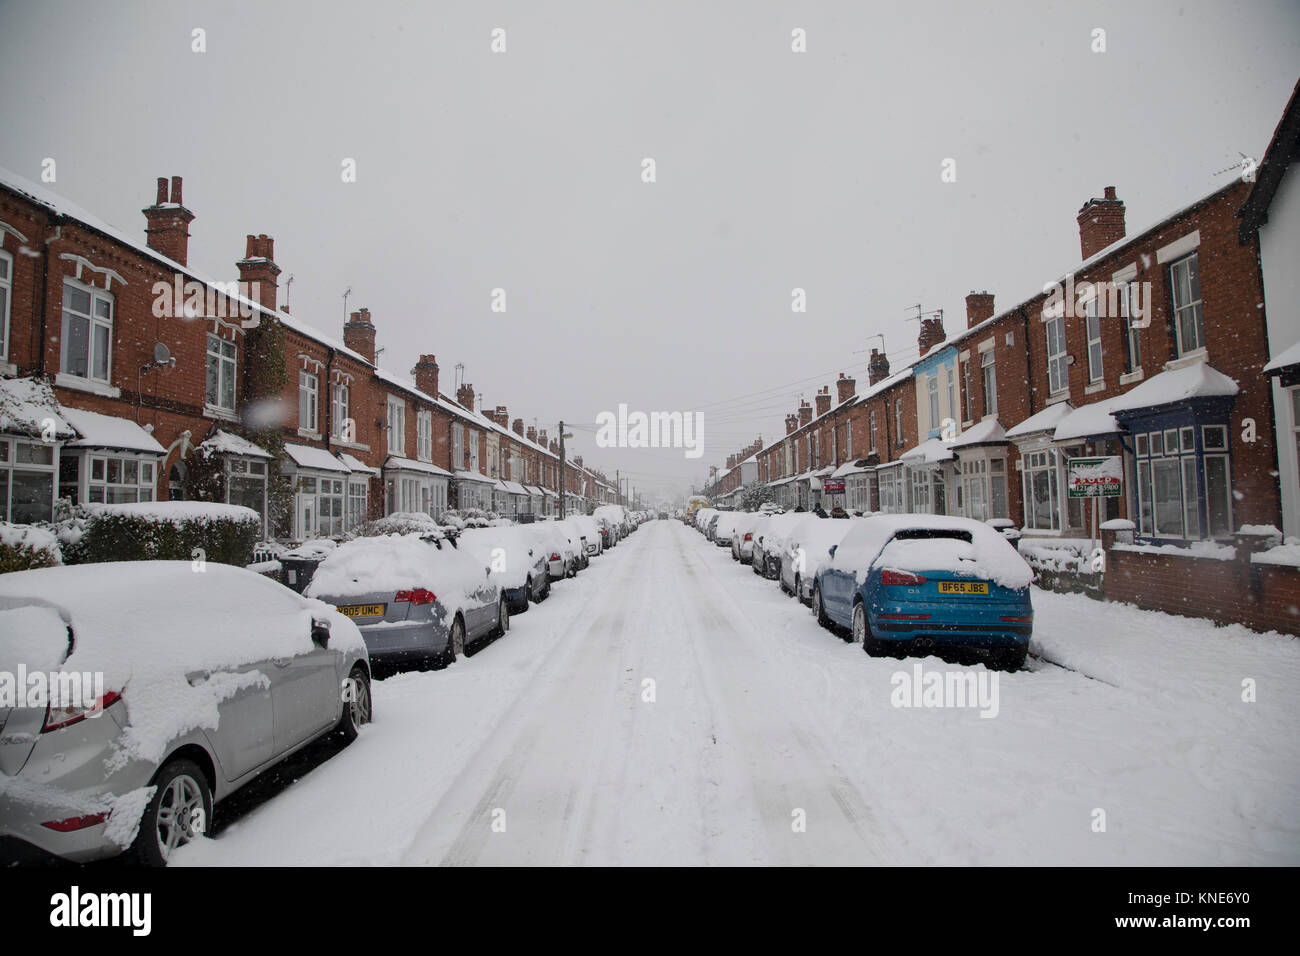 Street scene in Kings Heath during heavy snow fall on Sunday 10th December 2017 in Birmingham, United Kingdom. Deep - Stock Image